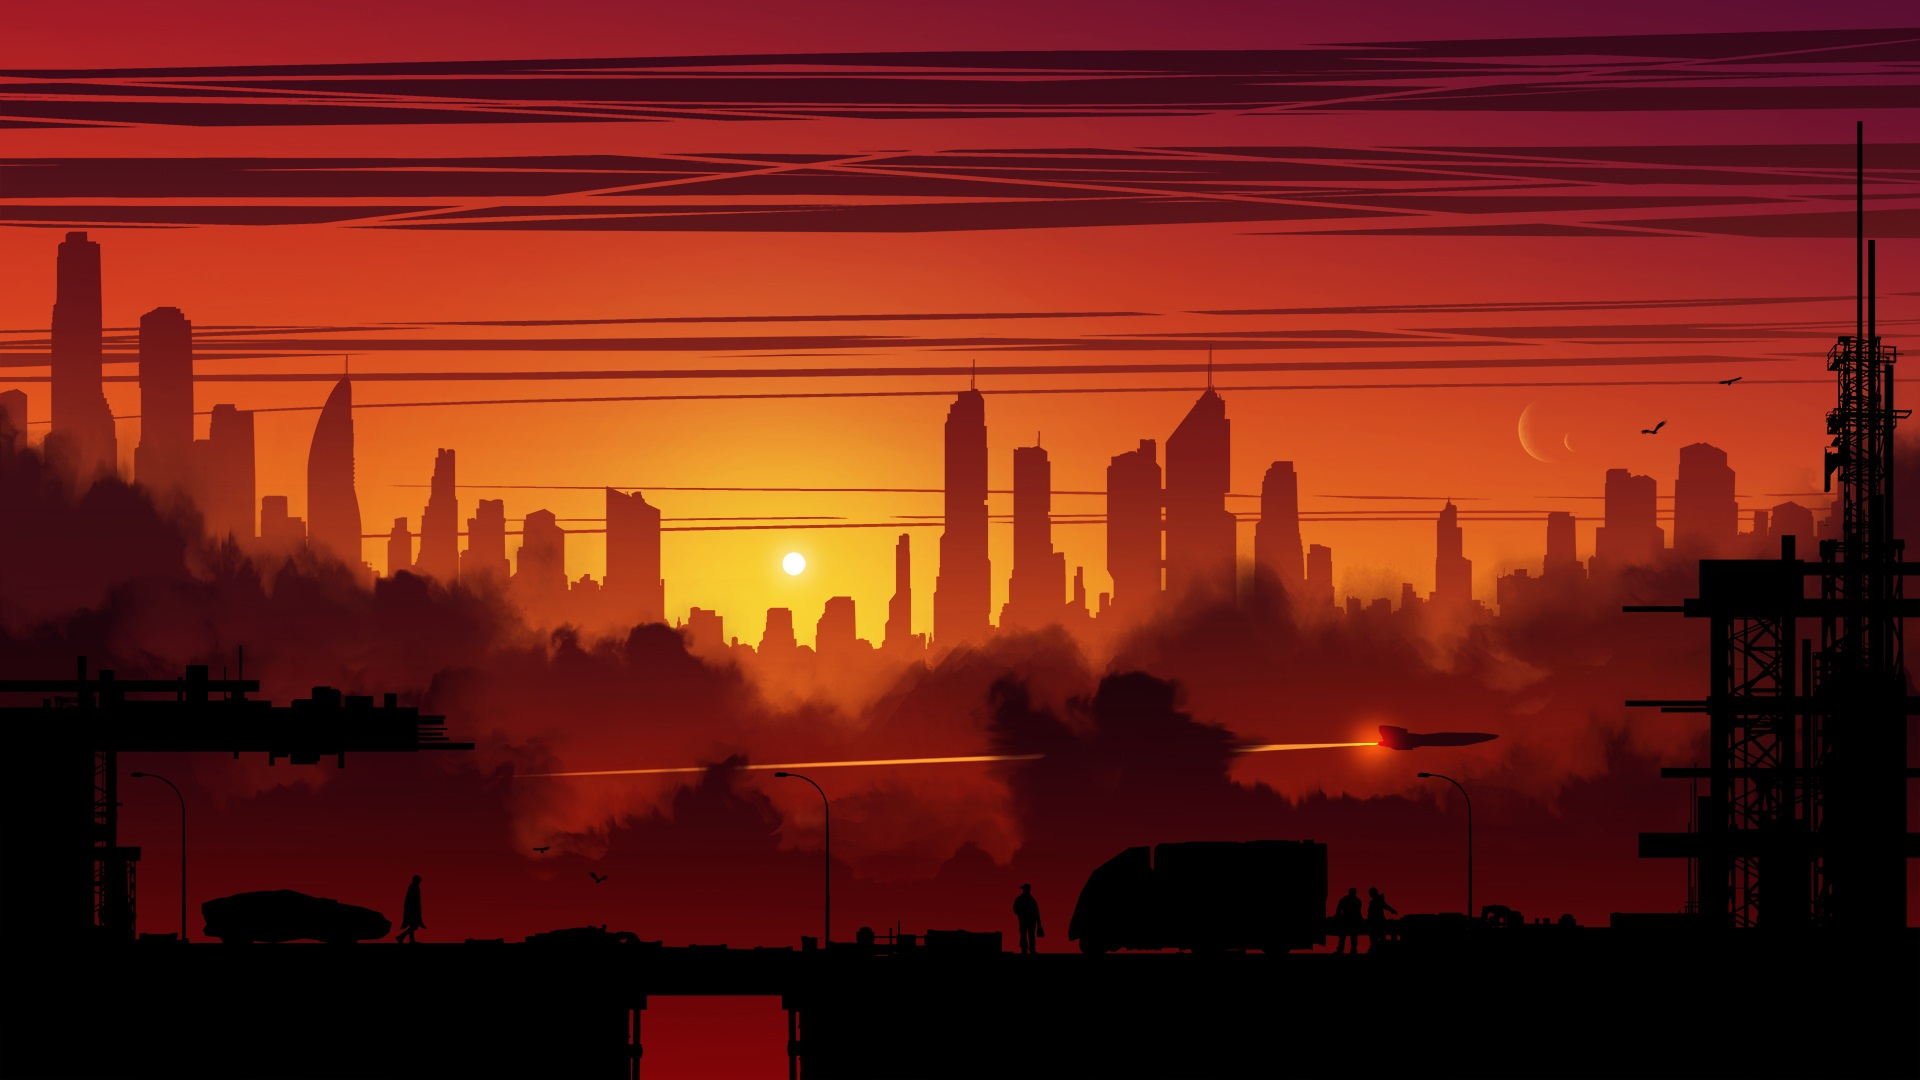 General 1920x1080 digital art city building sunset science fiction artwork illustration fantasy art Kvacm